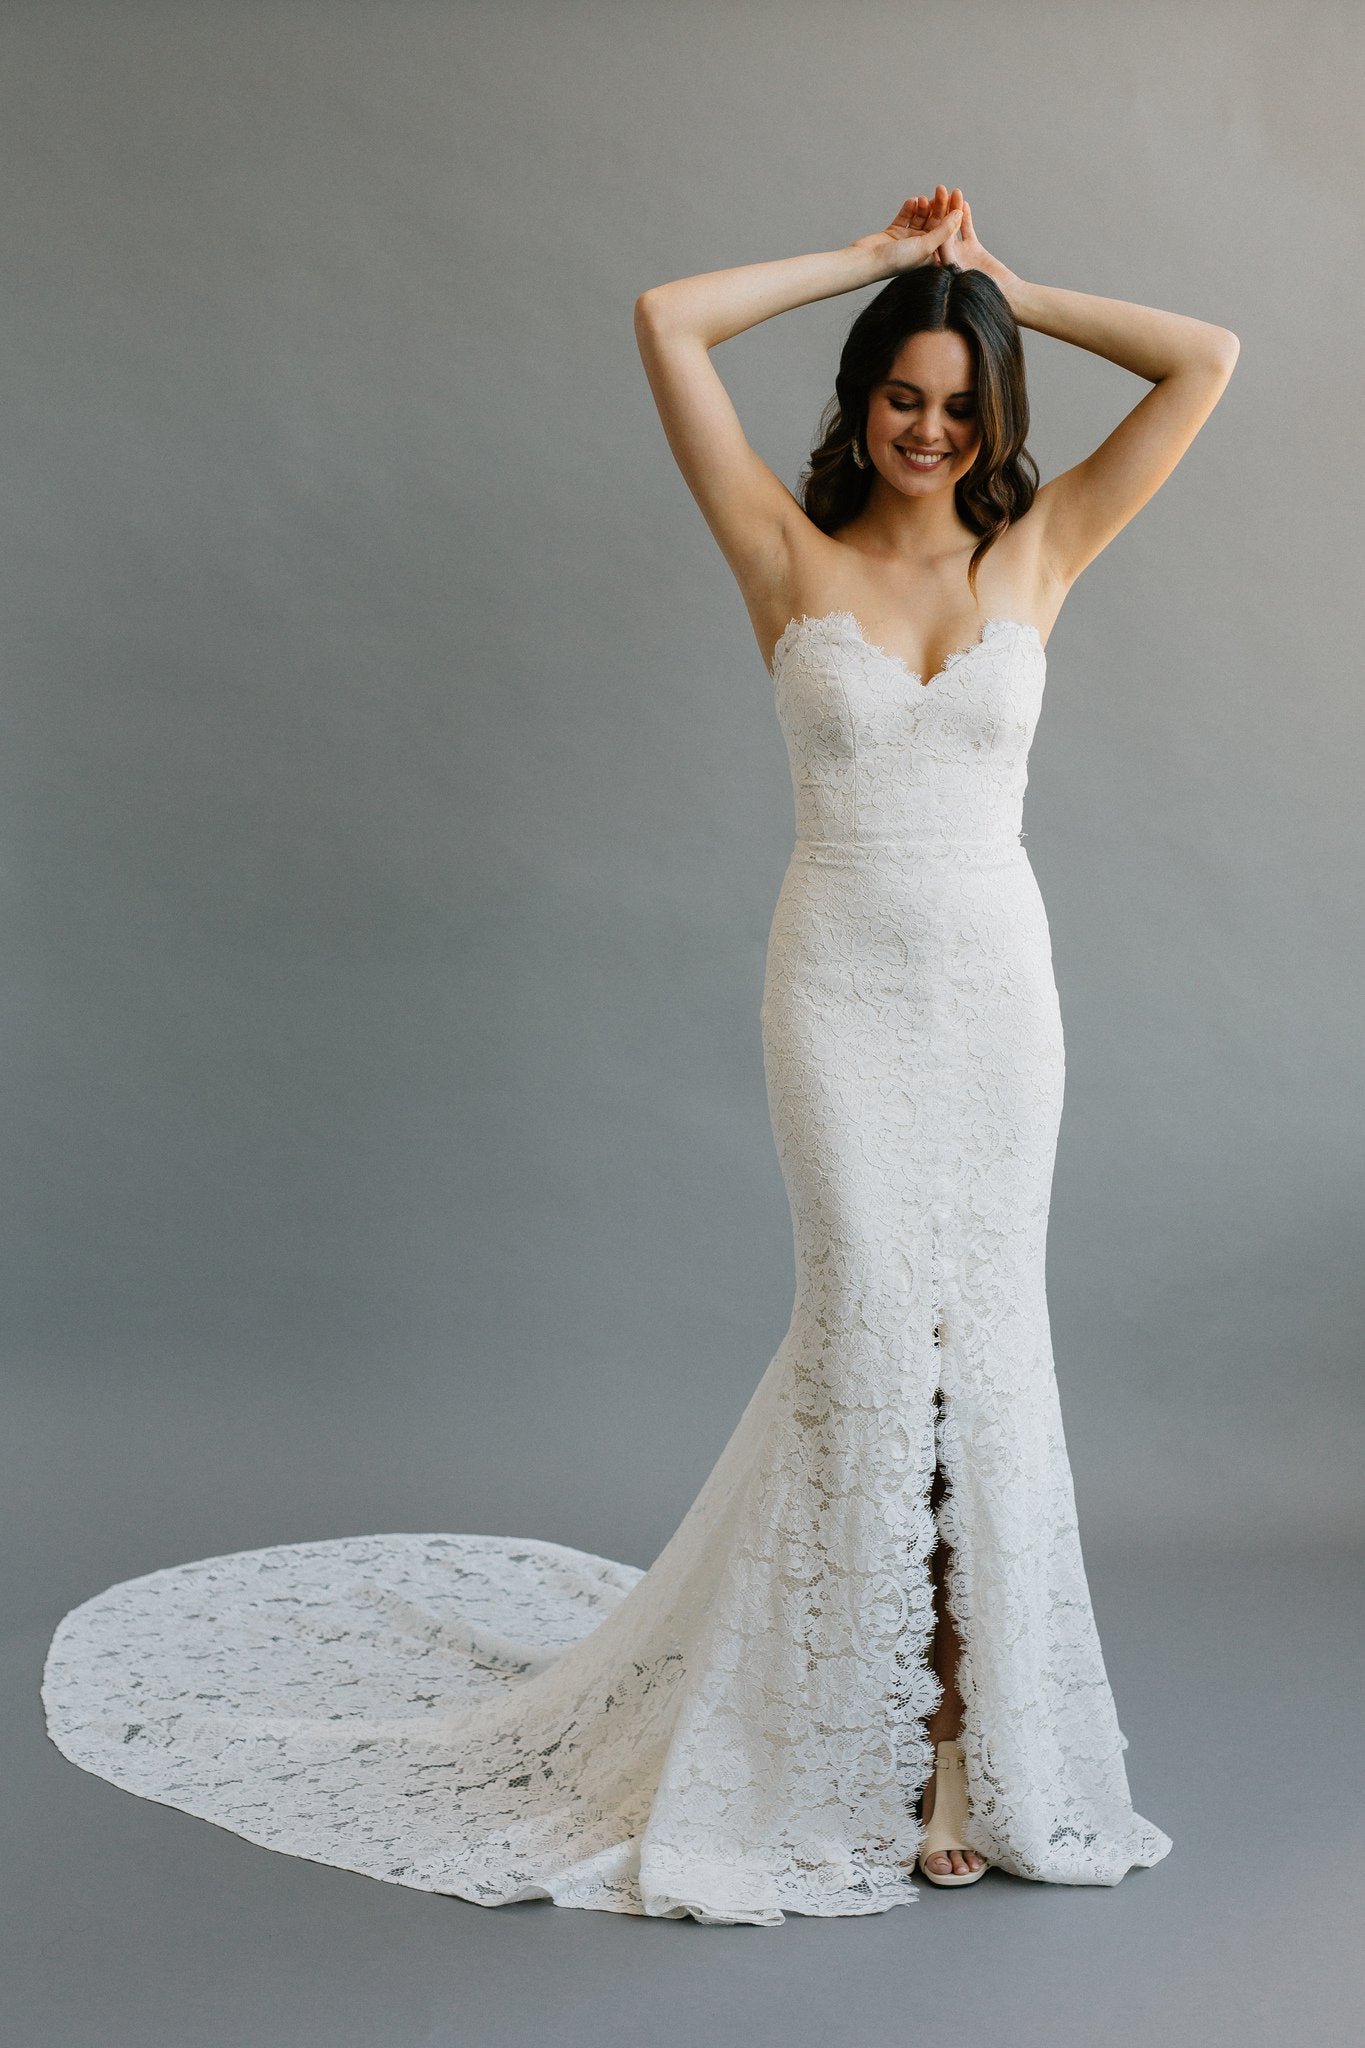 An elegant strapless sweetheart fitted wedding dress with a centre slit, long train, and a pearl button-up back